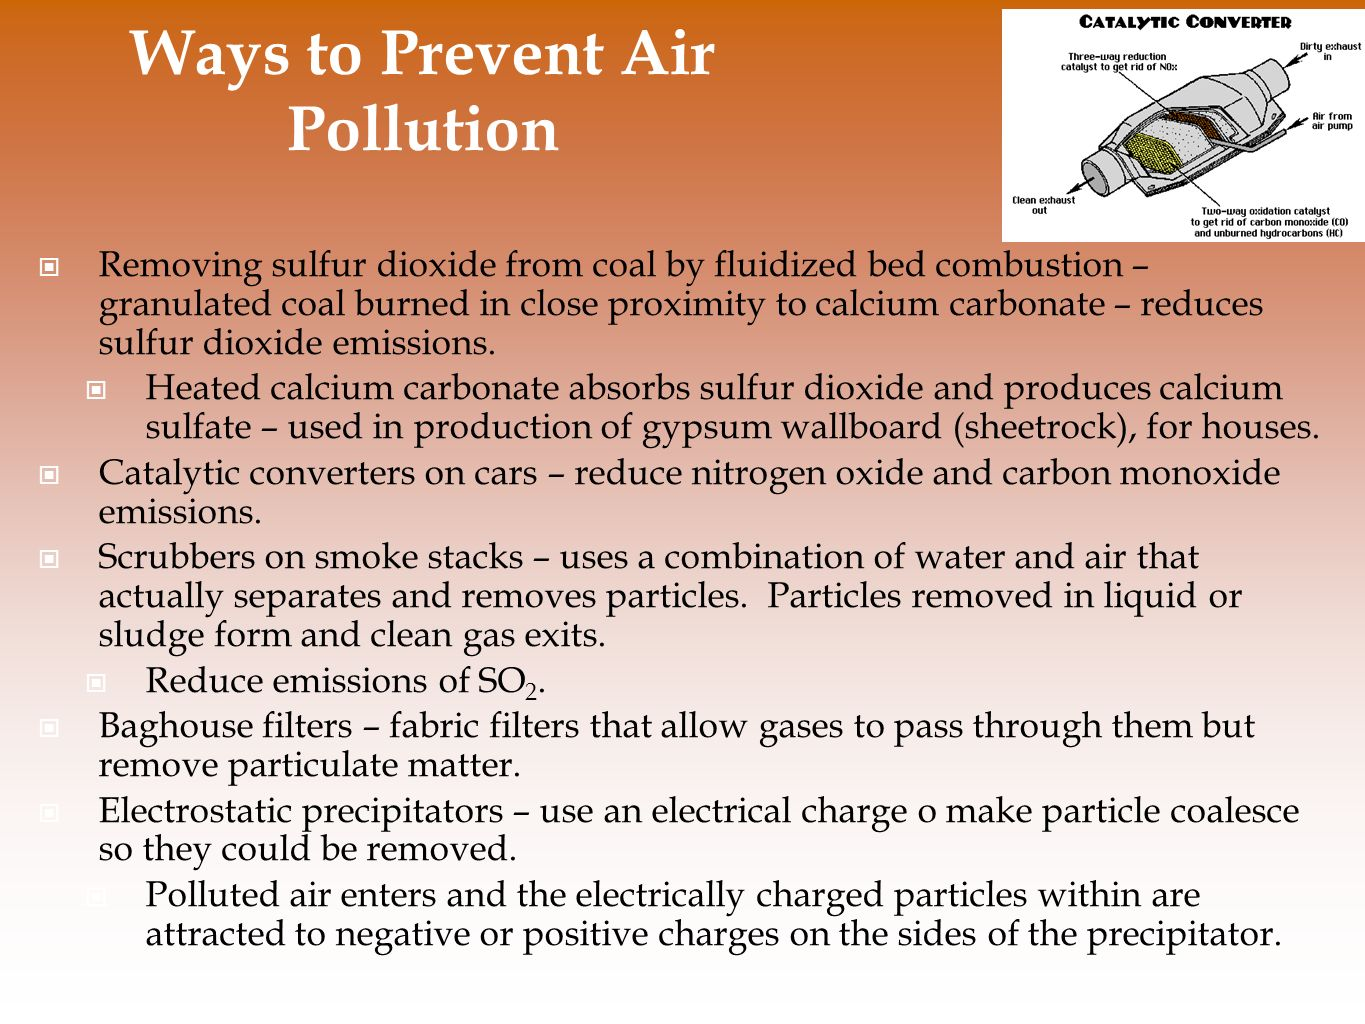 air pollution 13 essay Pollution is caused by the on purpose or accidental pollution like, wastewater from the oil refineries or cities, tankers accidents also account for the oil pollution nowadays, pollution is usual to subdivide it into the artificial divisions of air, land, water, noise pollution.